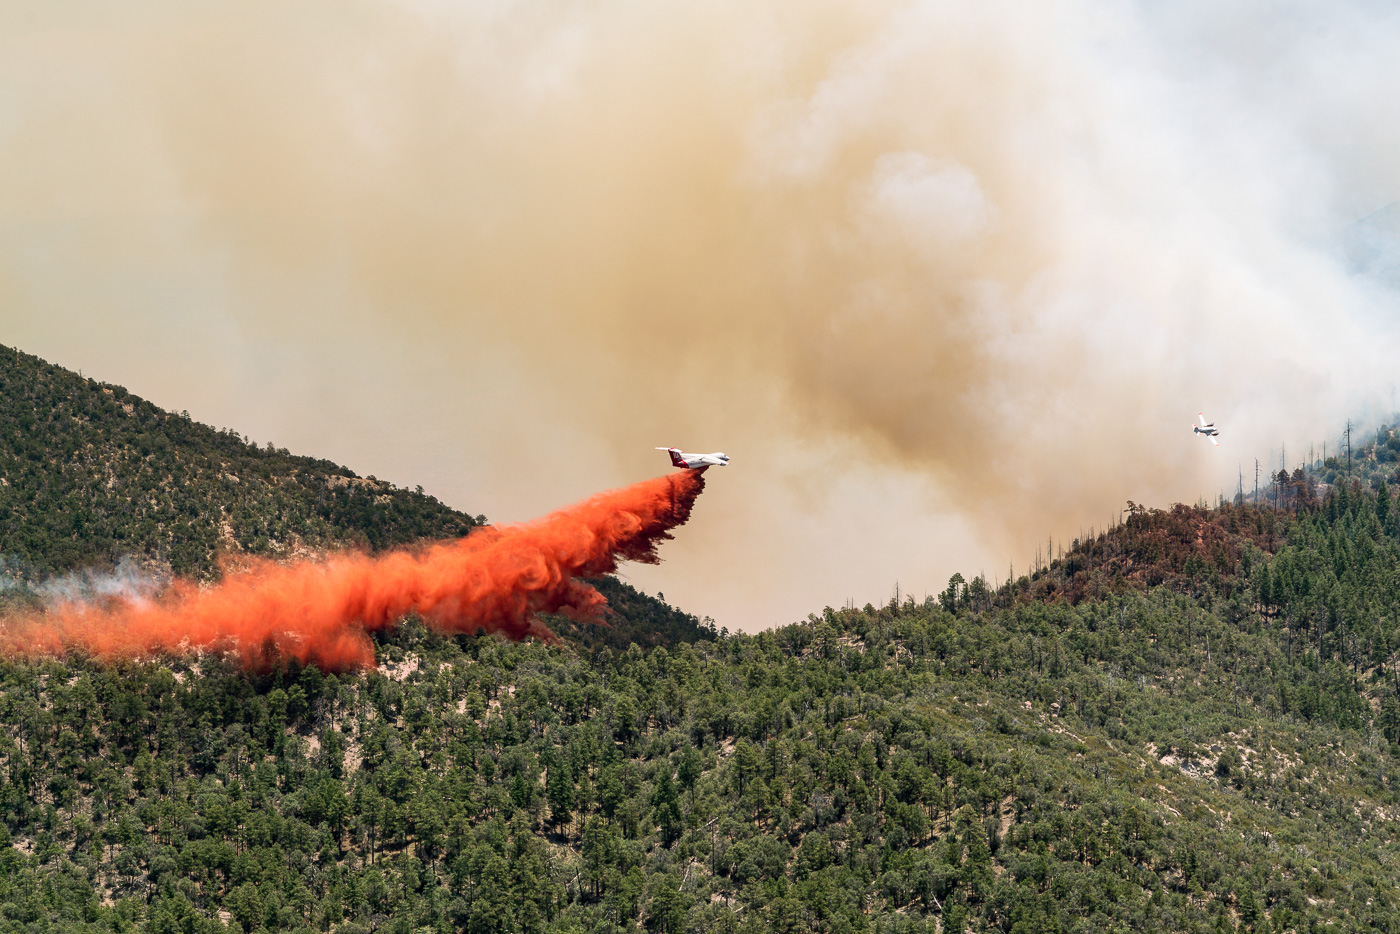 Airplanes drop fire retardant on flames trying to come over a ridge - near Guthrie Mountain. July 2017.